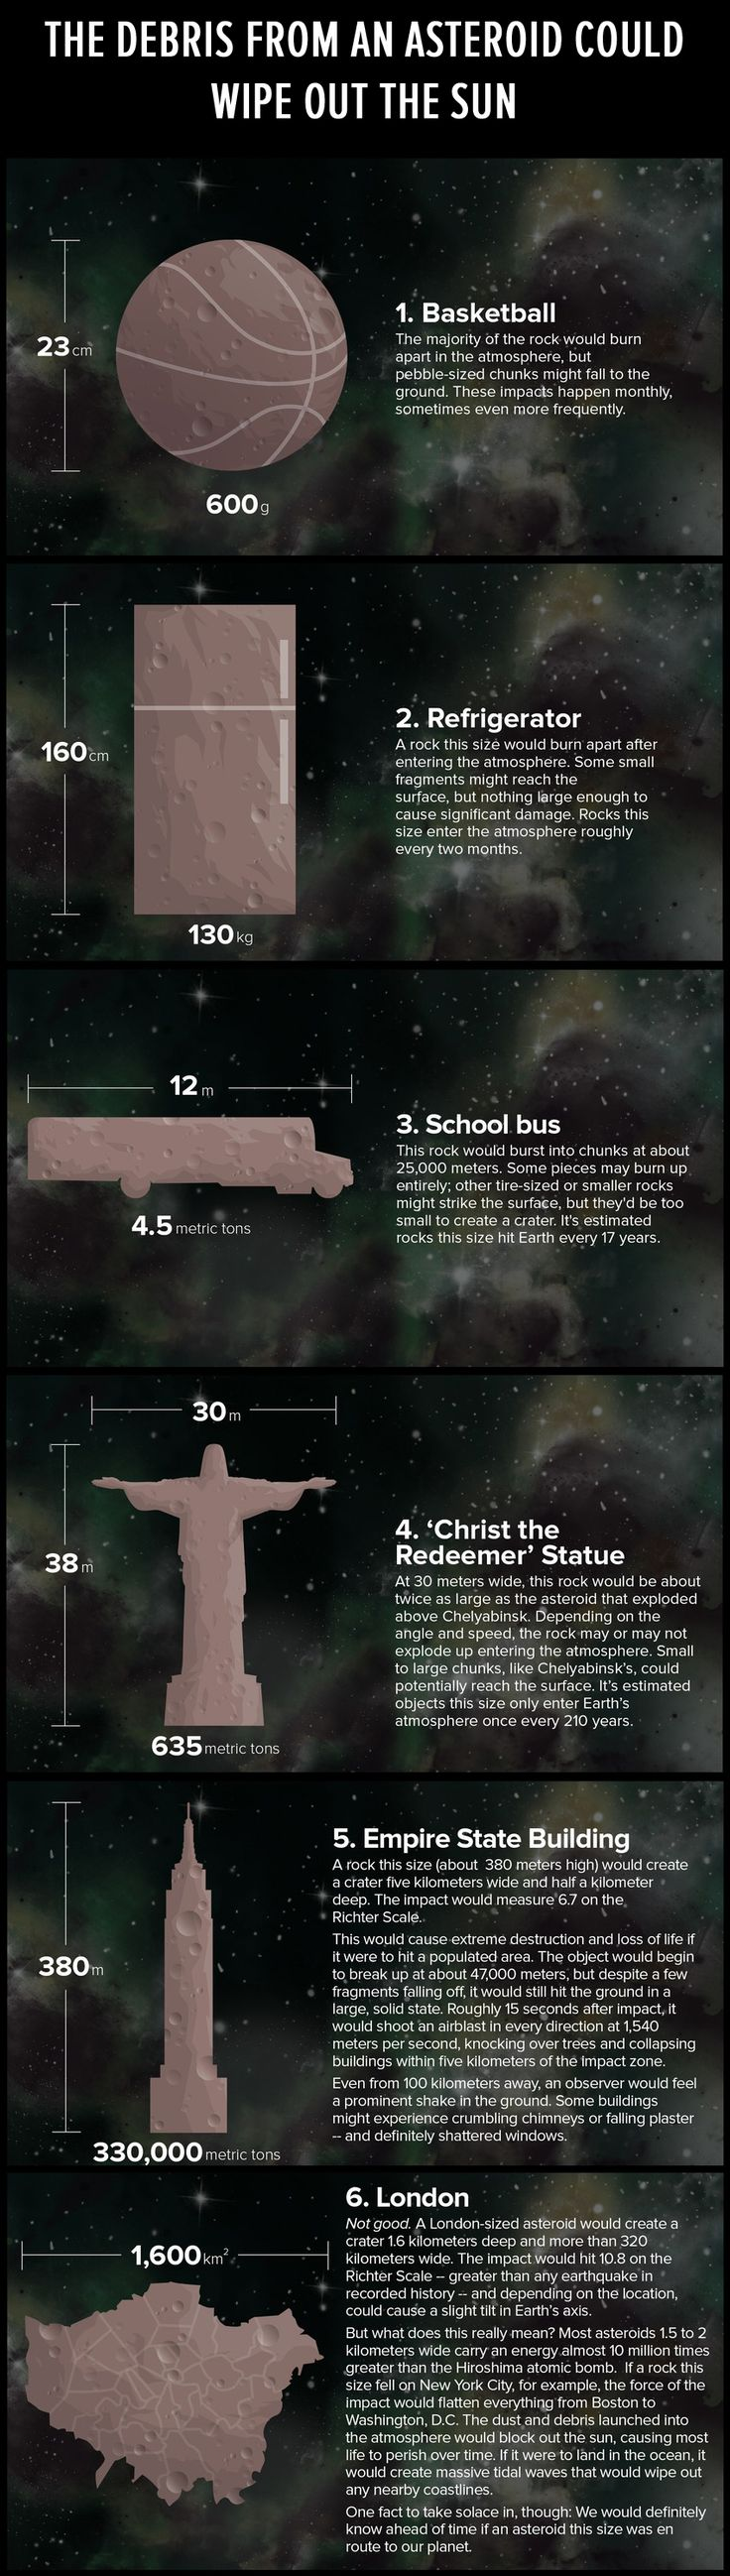 Here's a scary look at what would happen if asteroids of various sizes hit the earth.